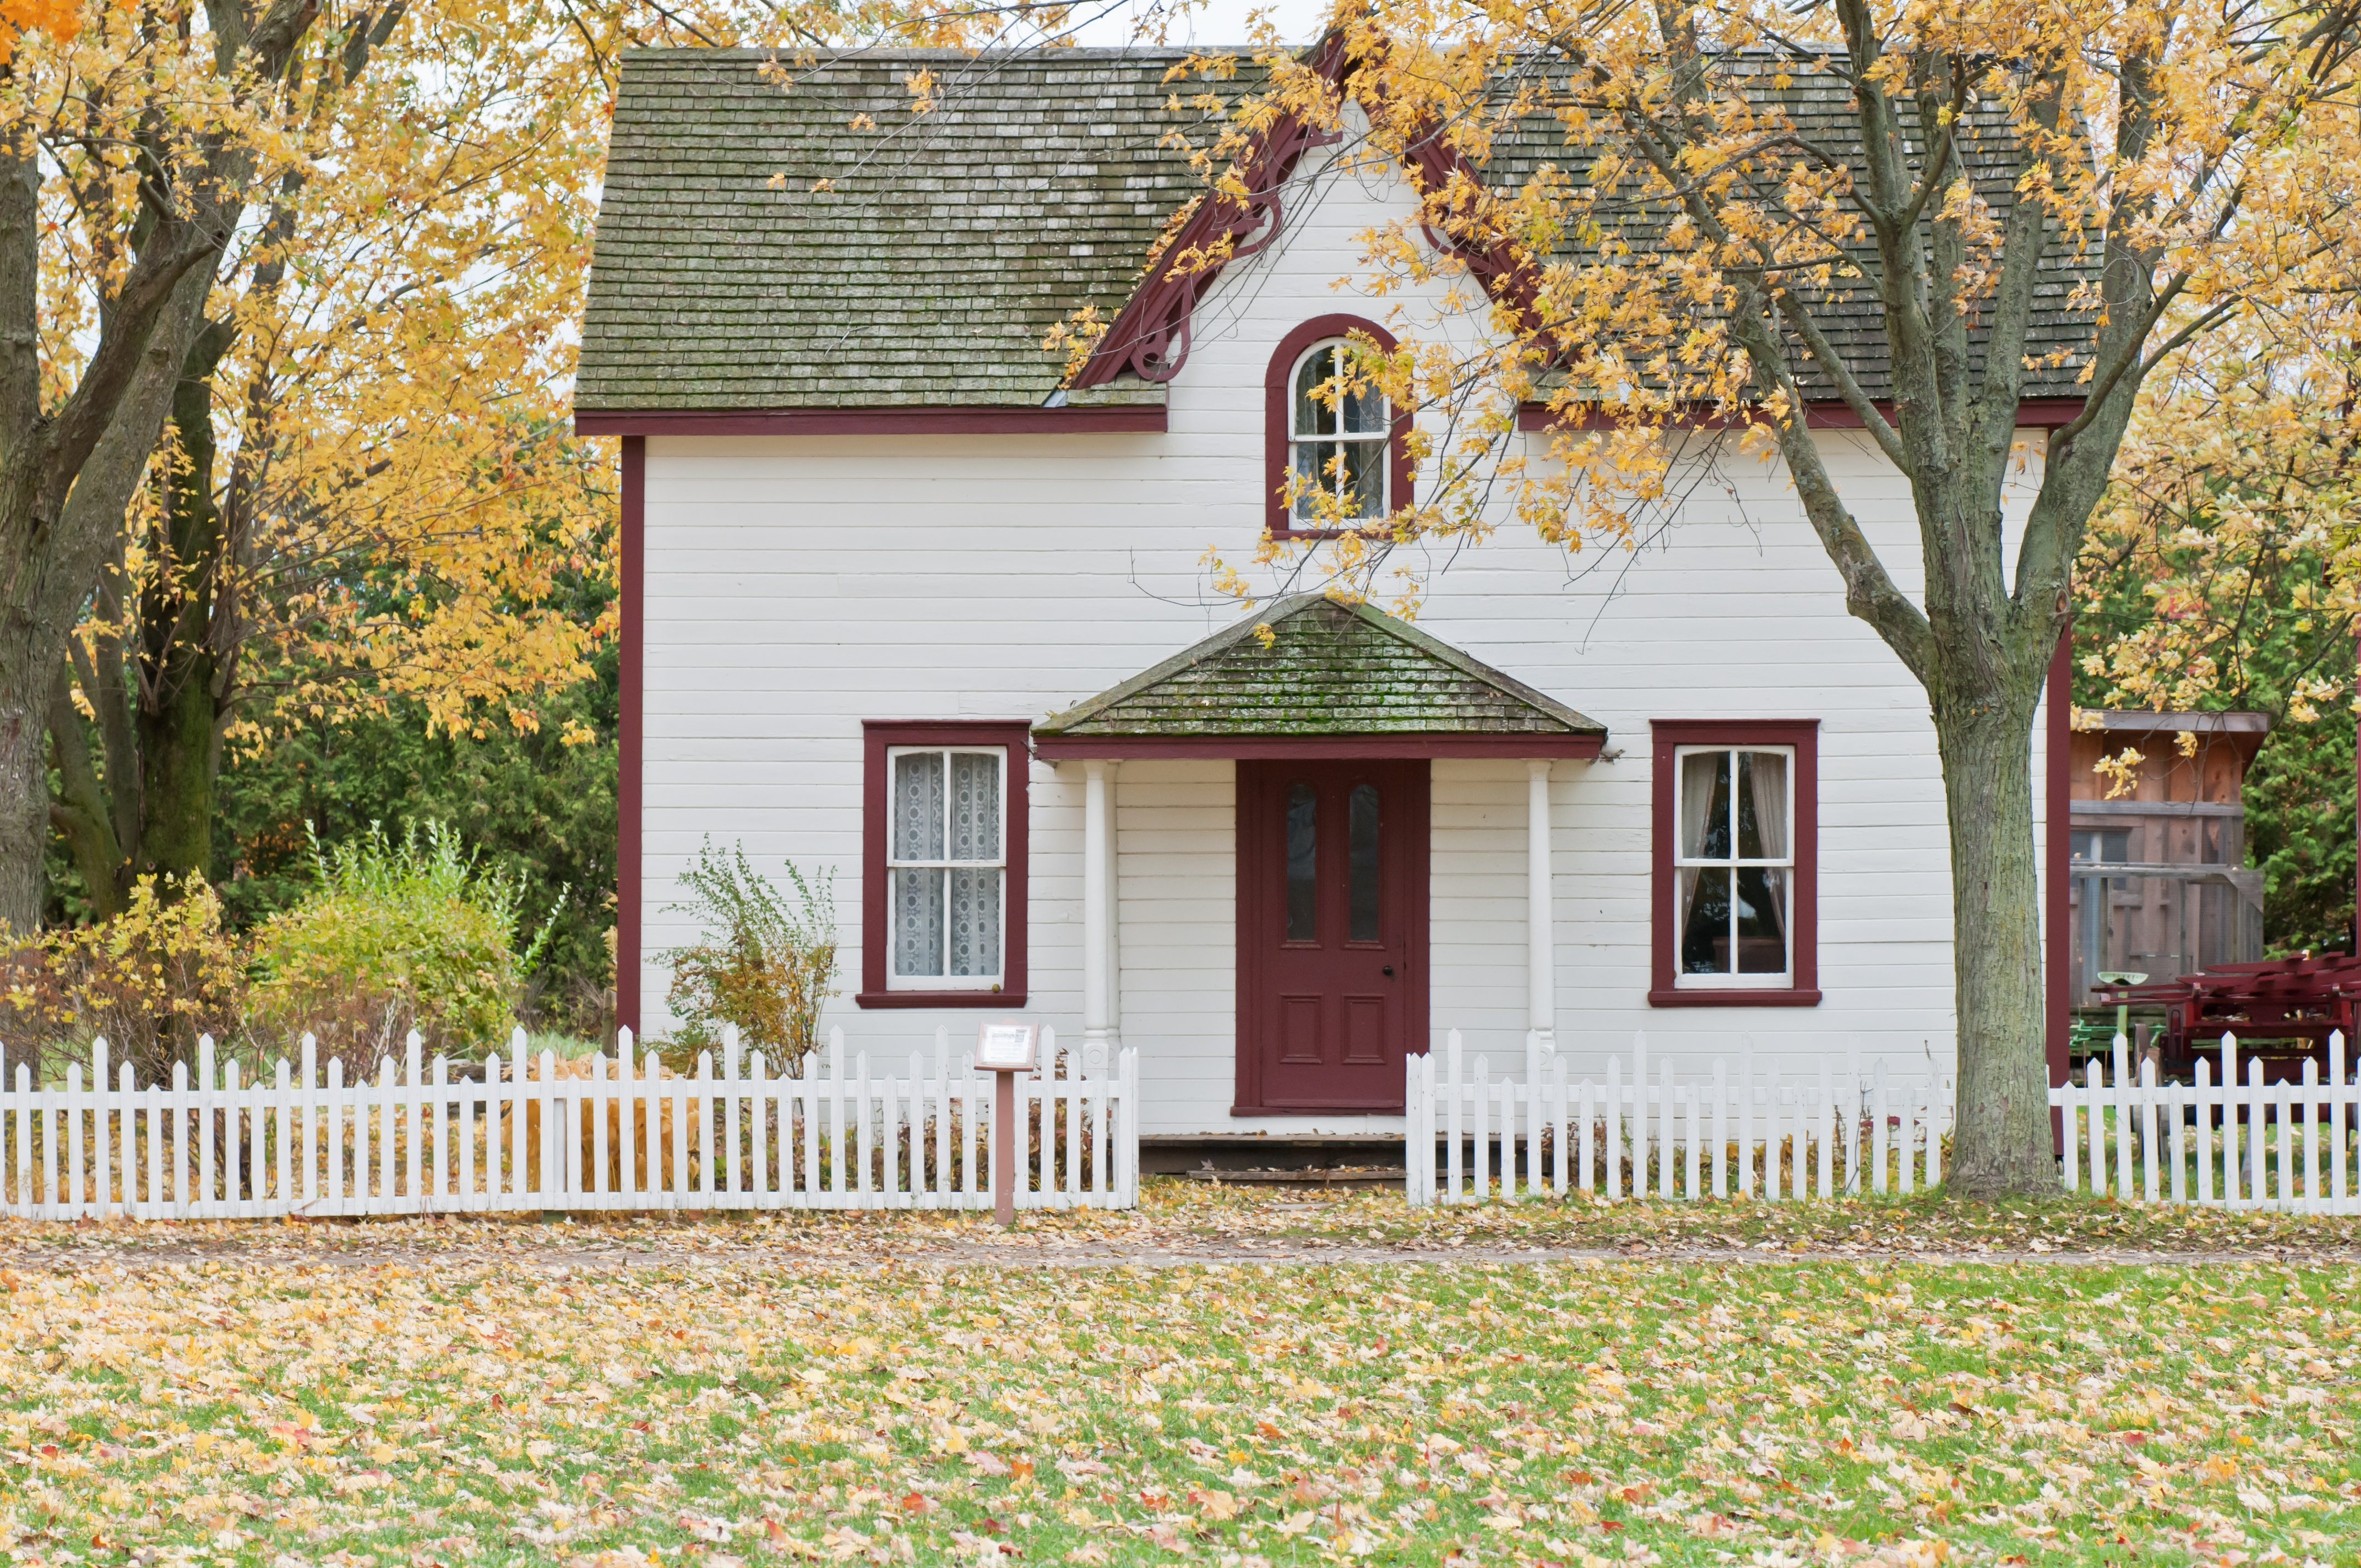 Three Basic Things to Think About When Shopping for a New House 10